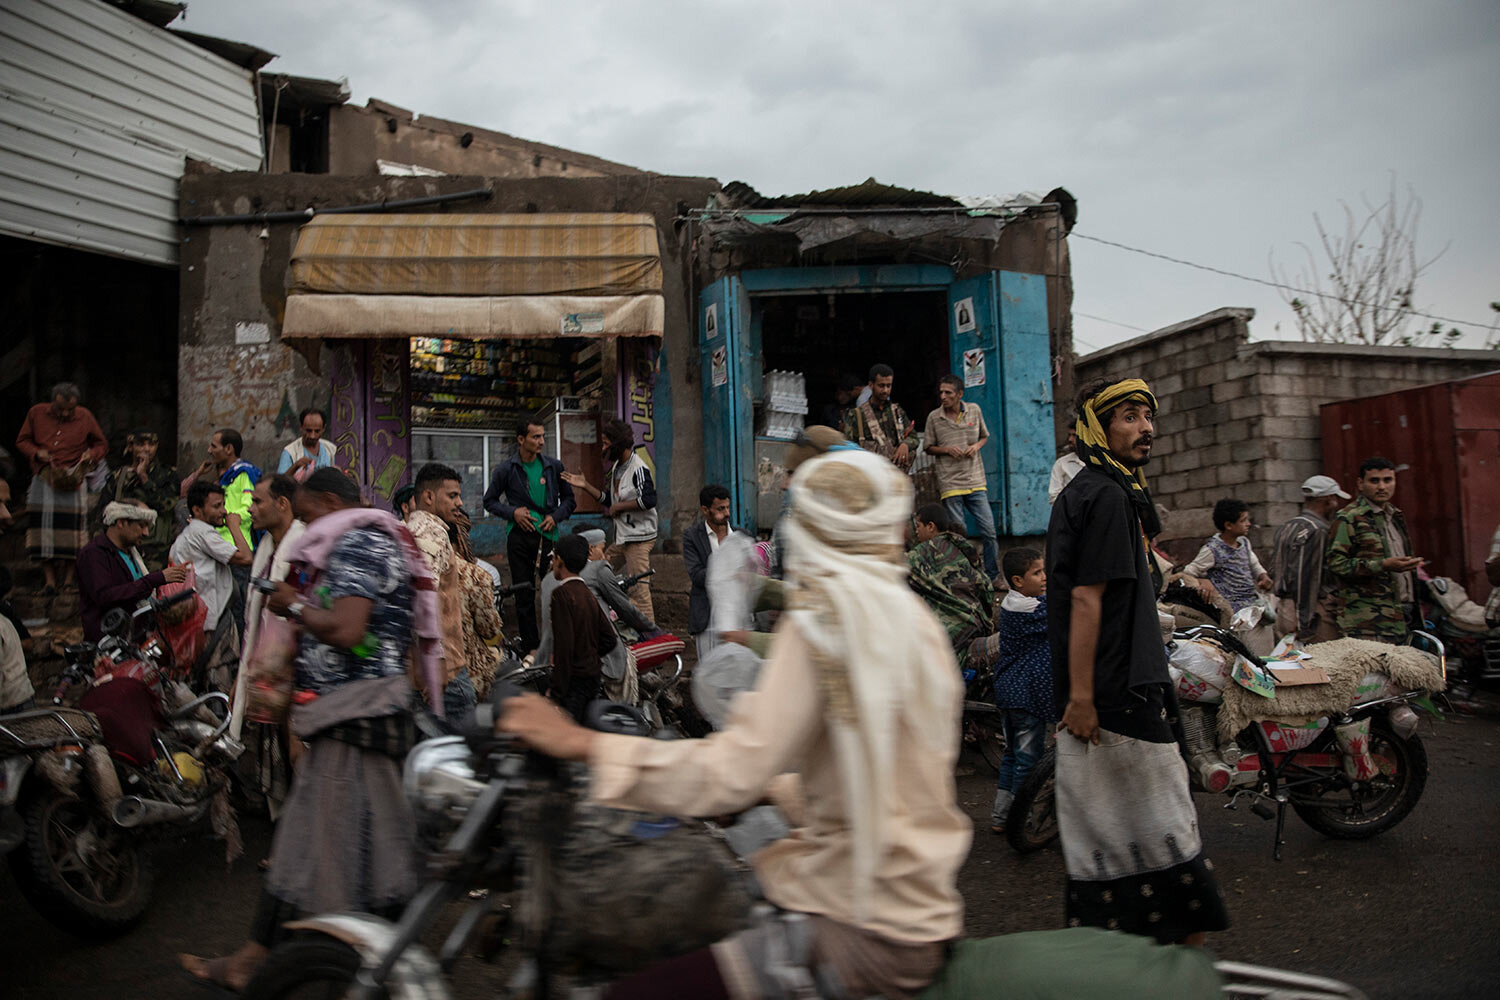 People gather at a market in Dhale province, in Yemen. (AP Photo/Nariman El-Mofty)